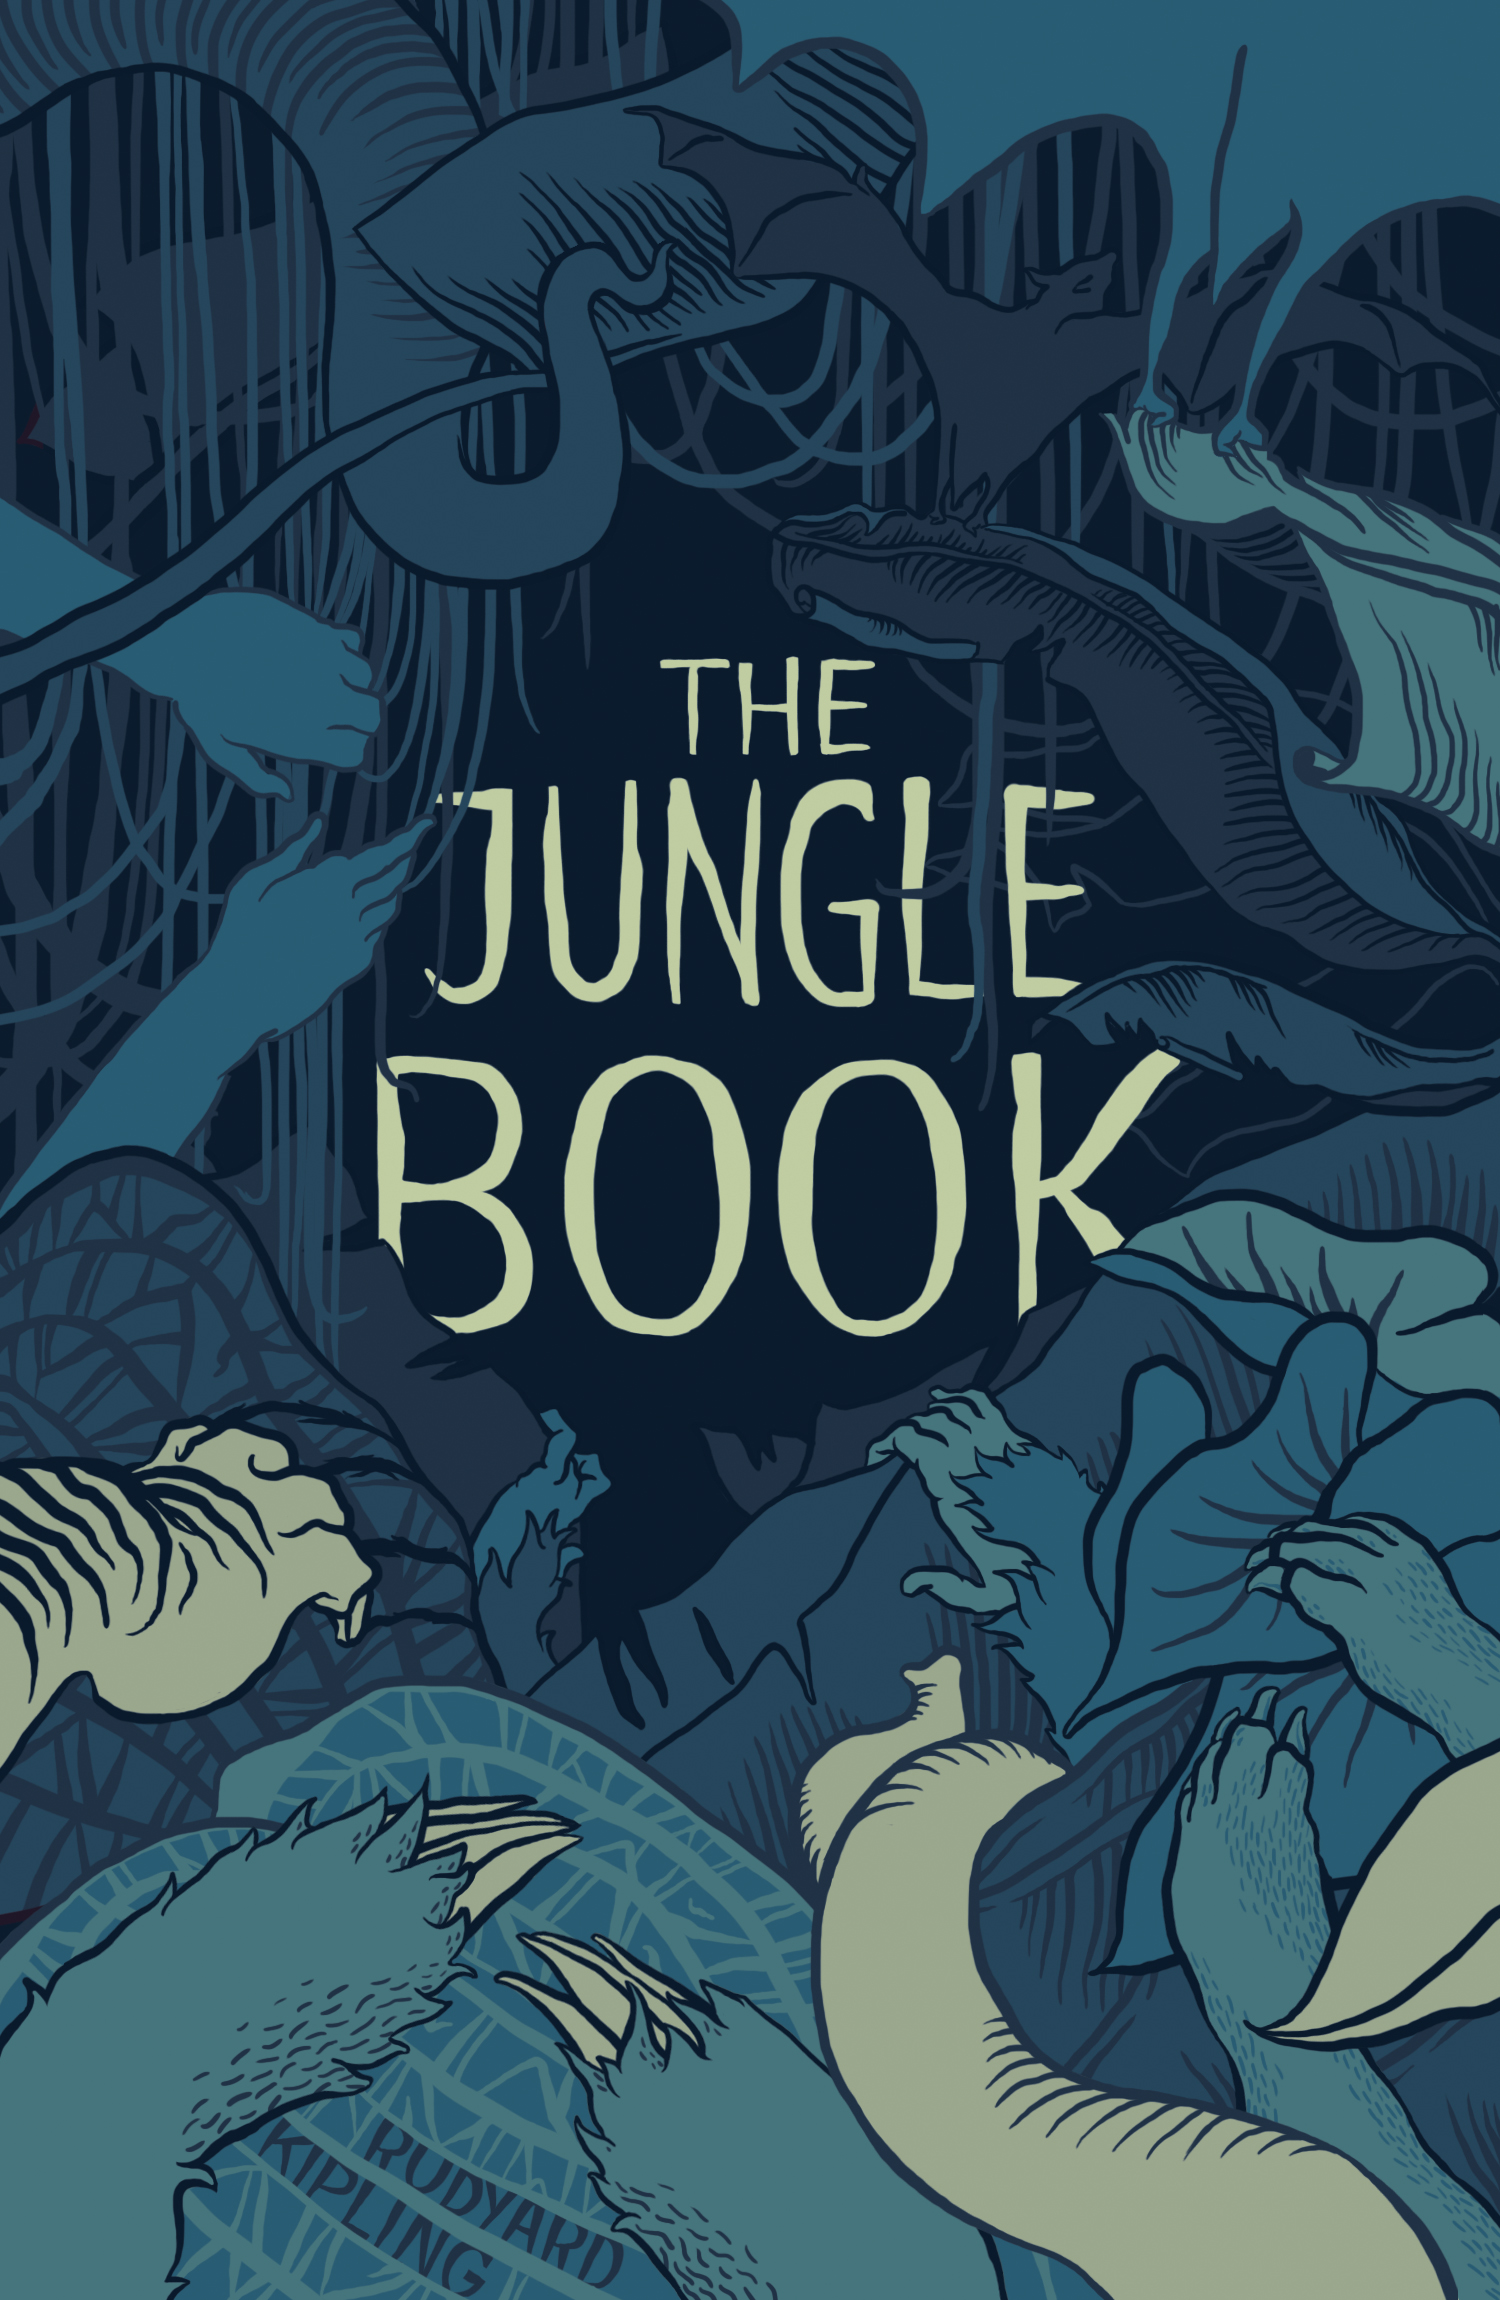 Book Cover Illustration Contract ~ Cover illustration the jungle book by brett